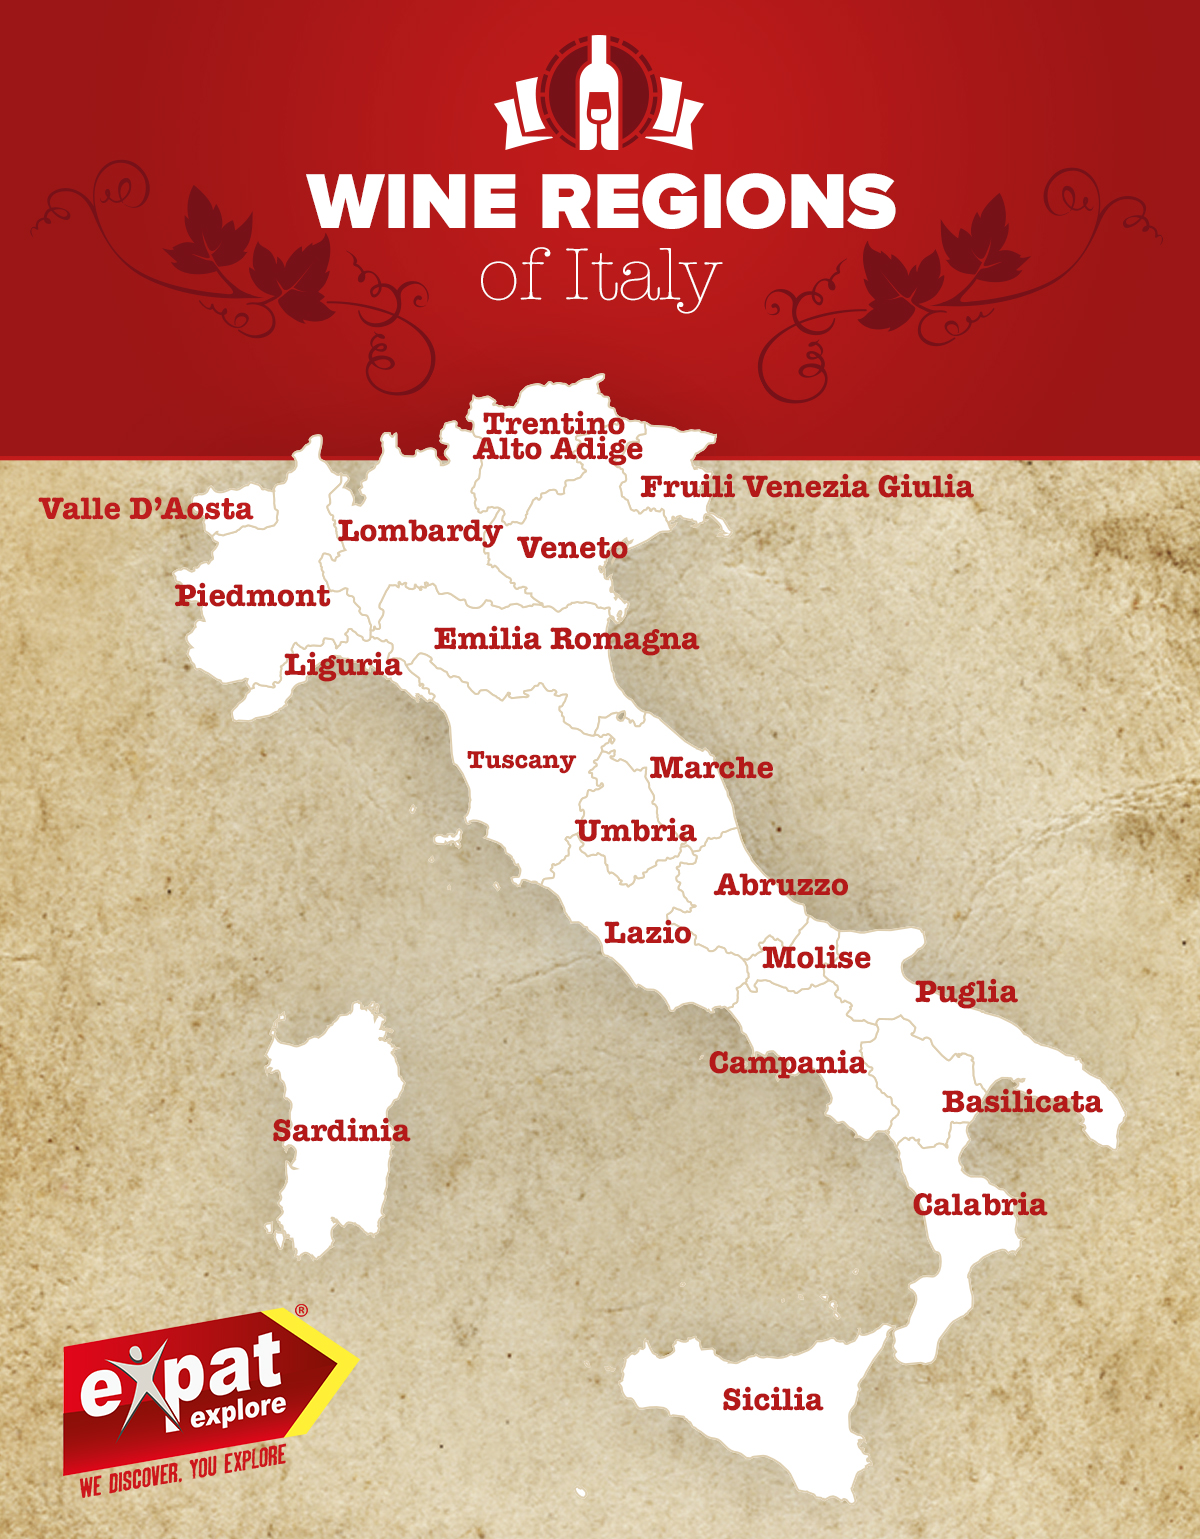 Italys 20 wine regions and what to drink where Expat Explore